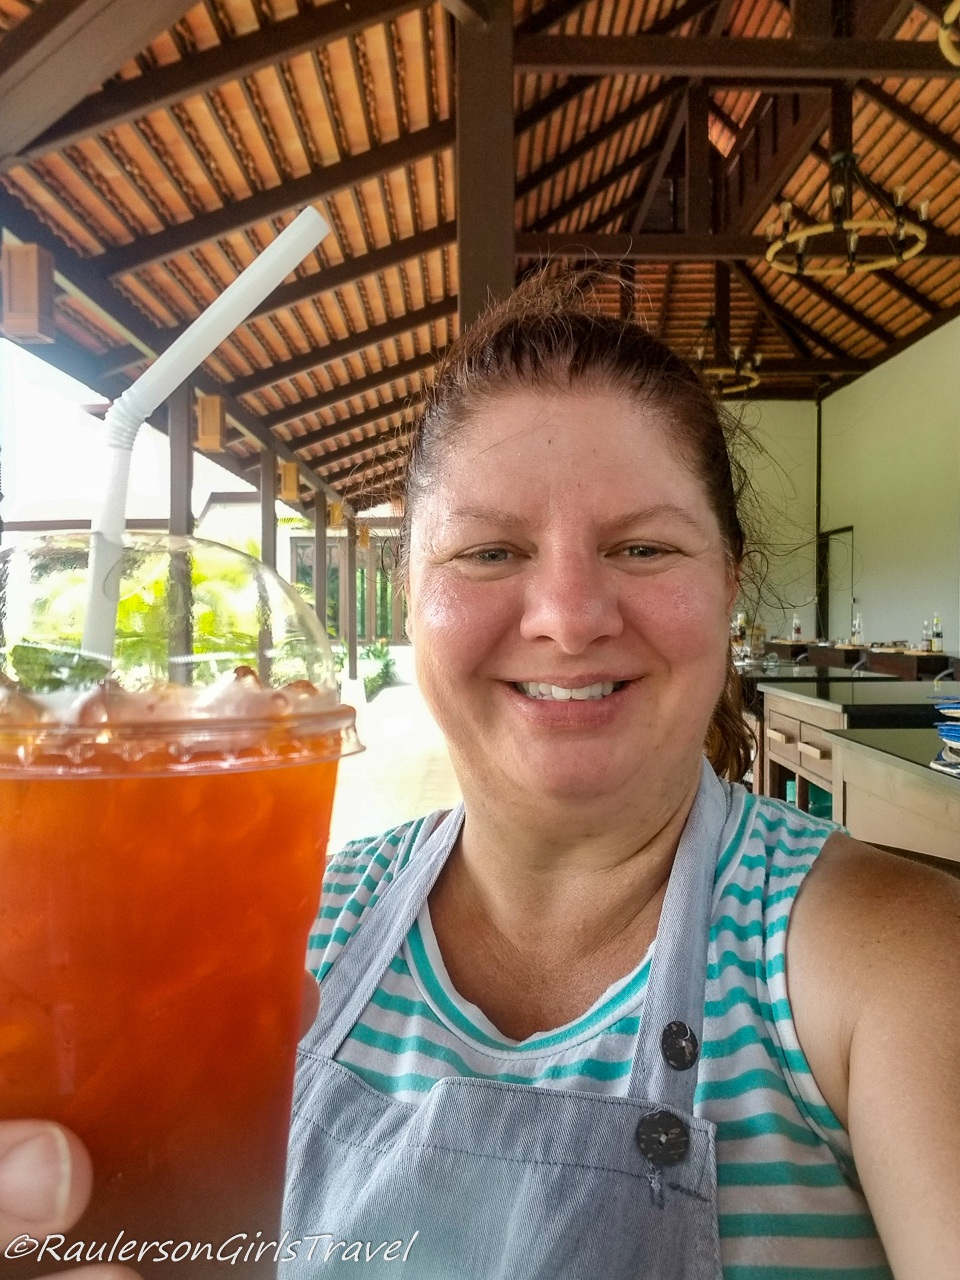 Heather with a cool drink after the Thai cooking class